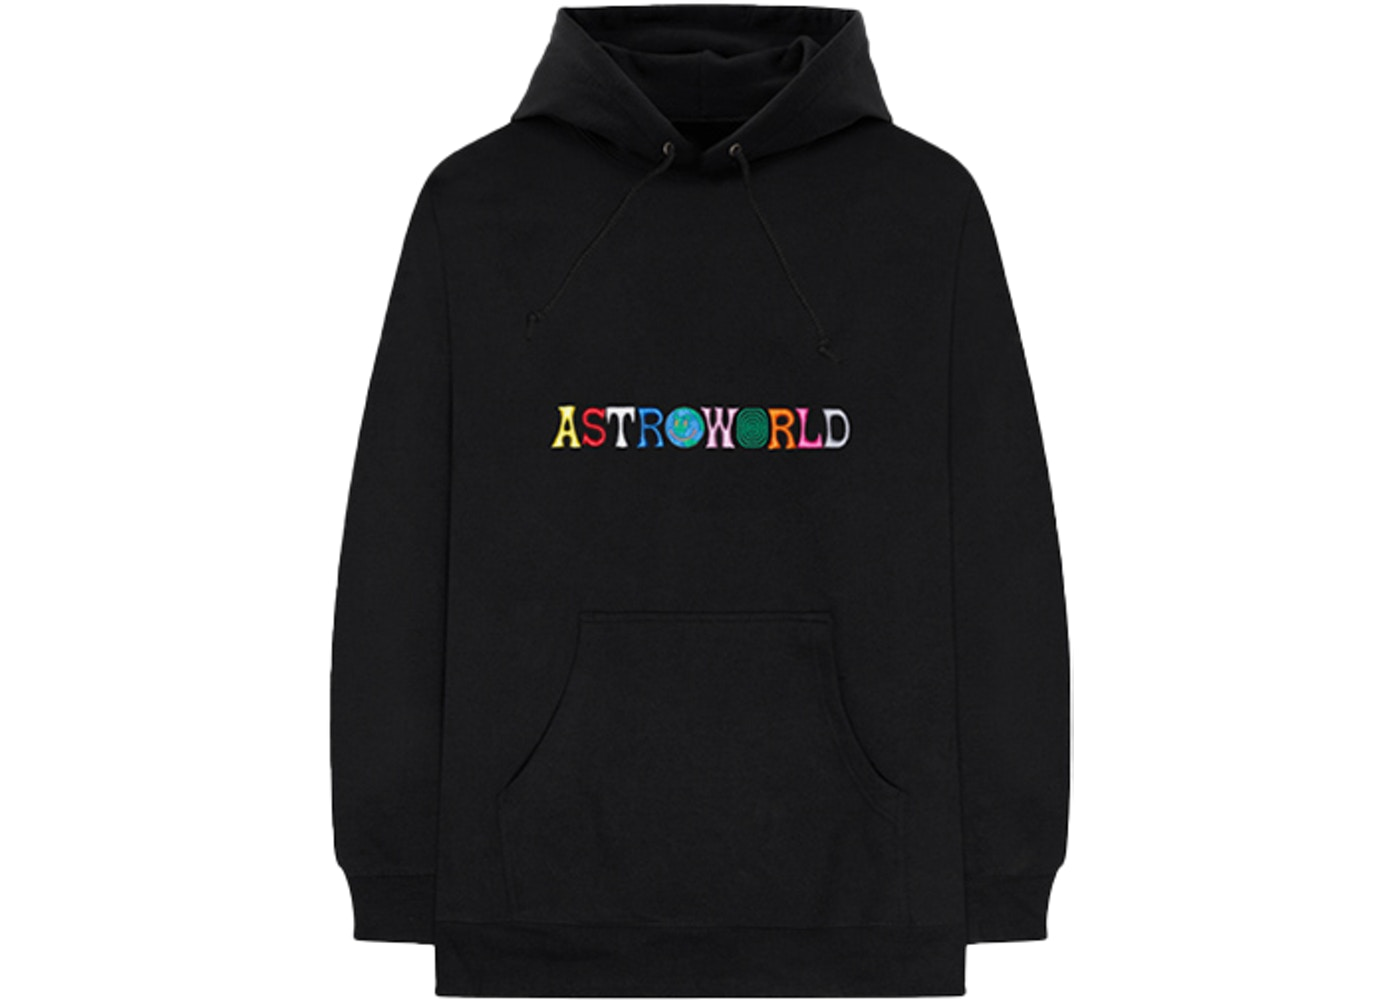 dae49e77d32b Travis Scott Astroworld Wish You Were Here Hoodie Black. Astroworld Wish  You Were Here